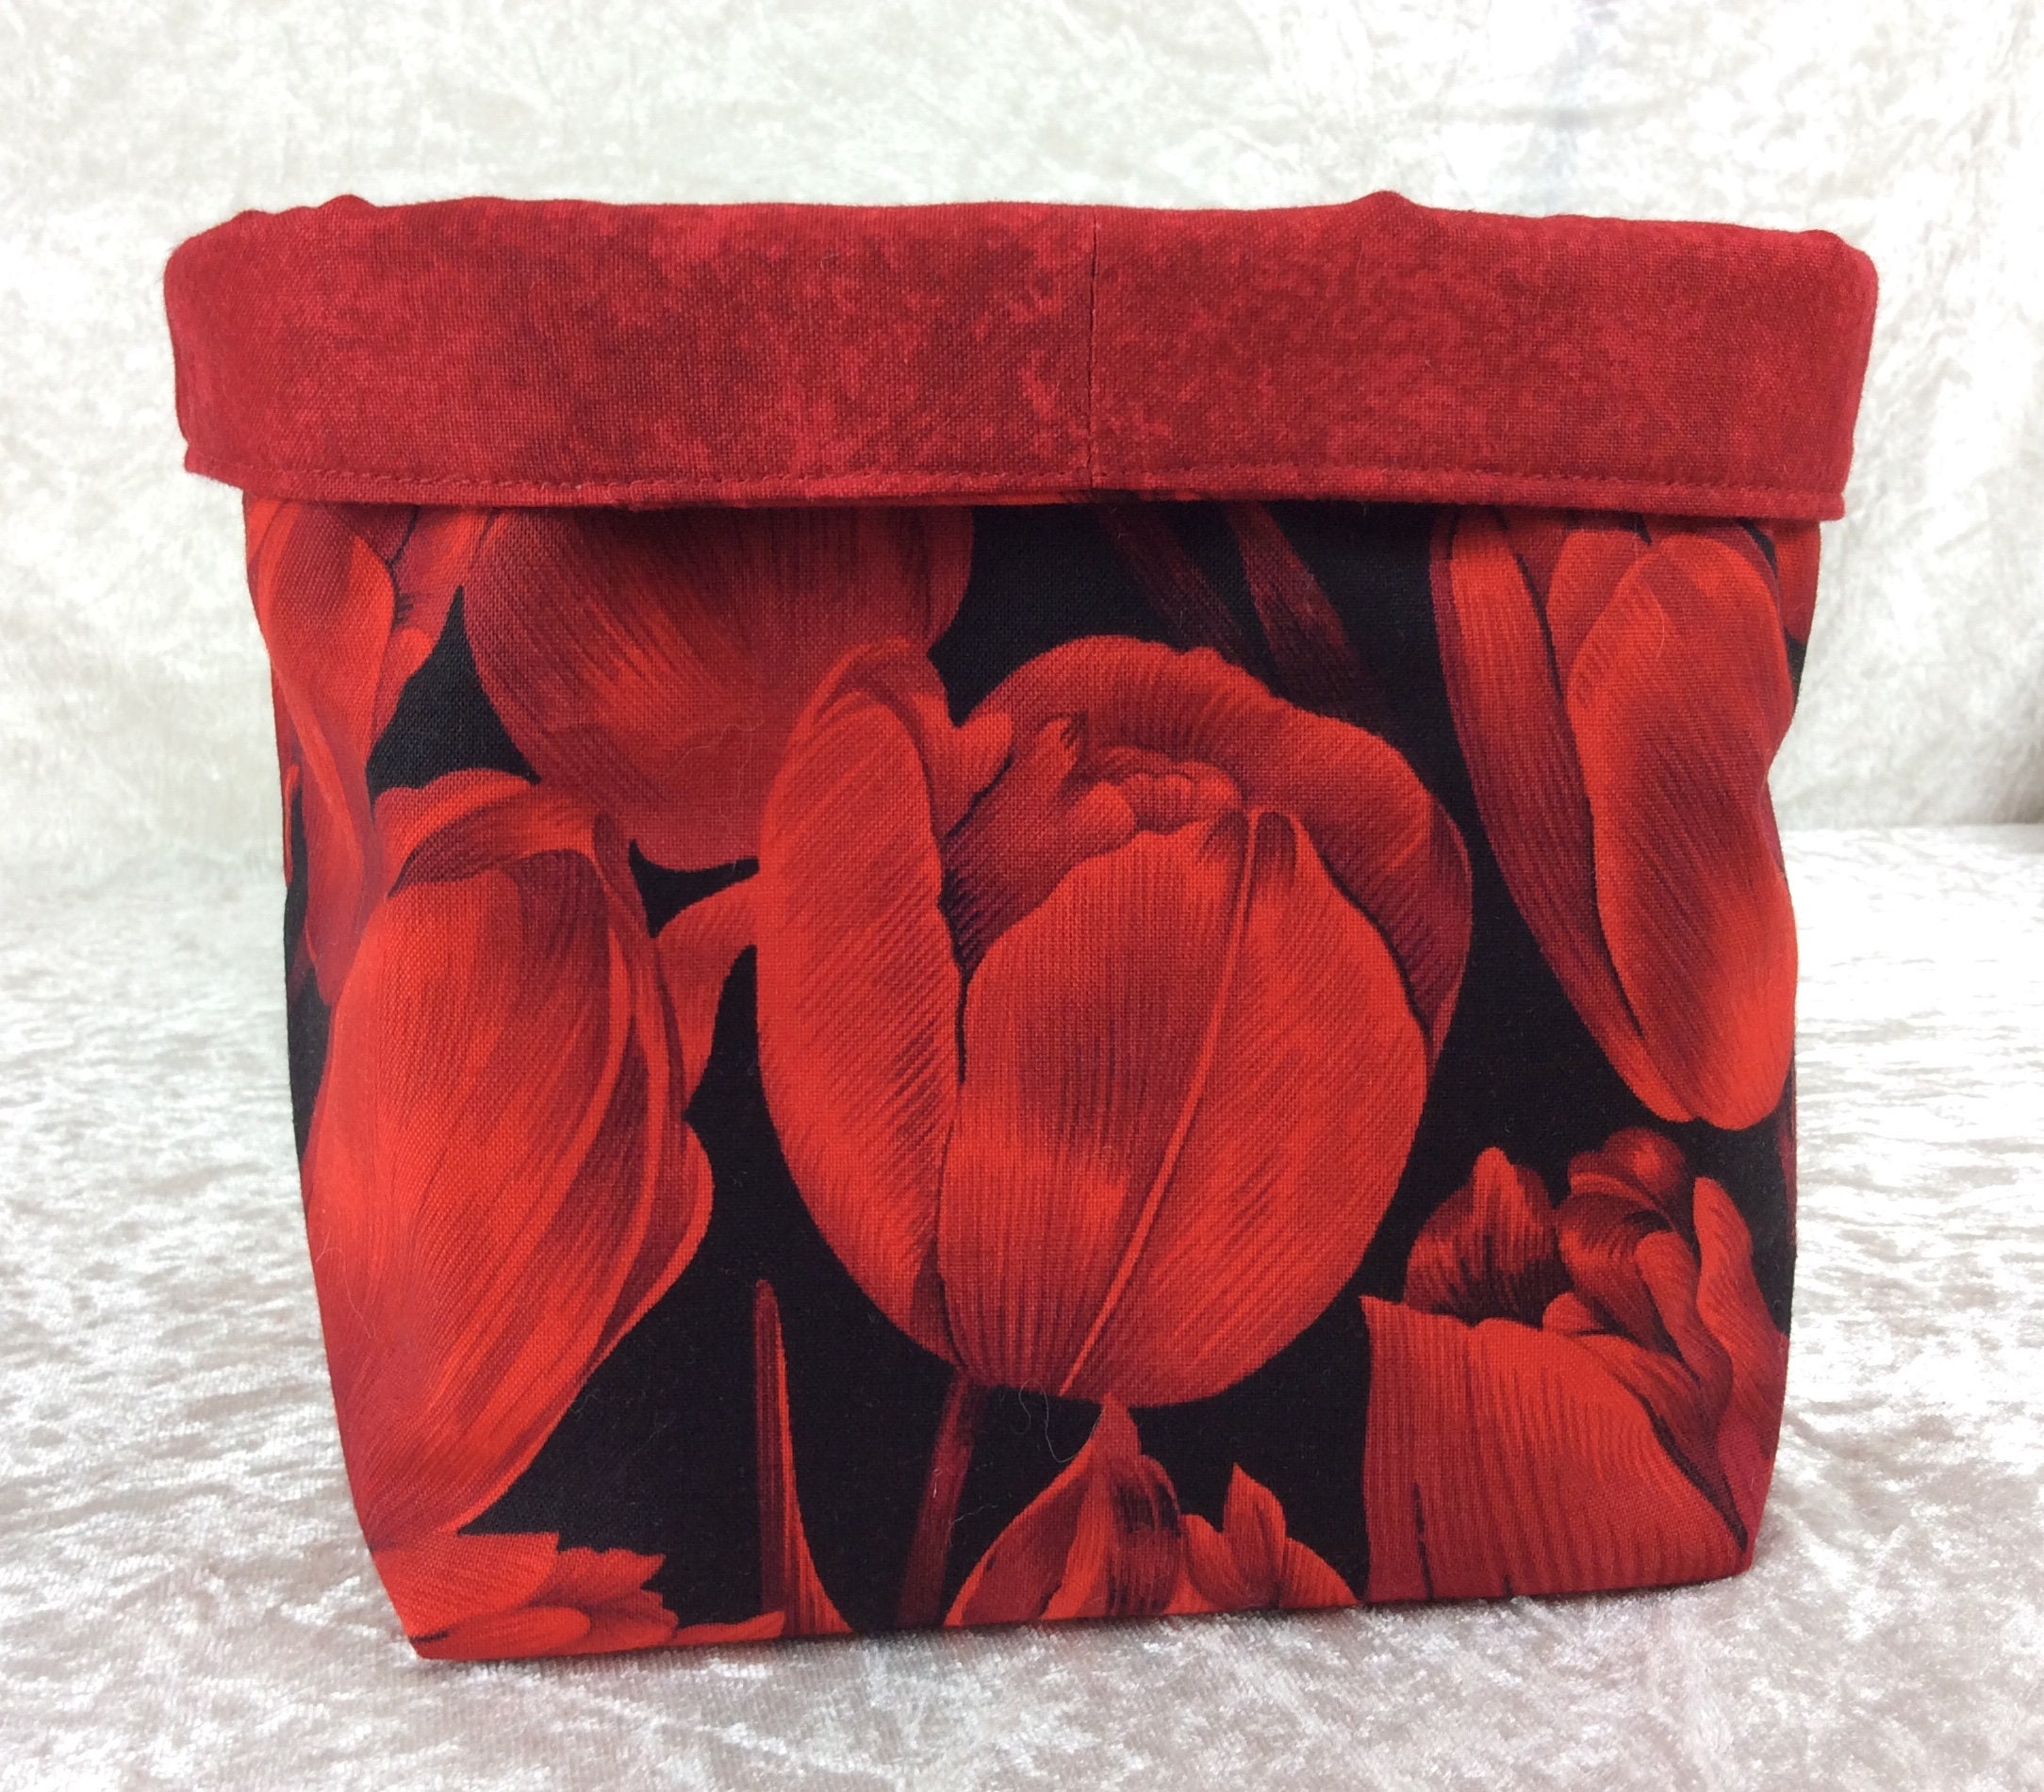 Image of Red Tulips fabric basket storage bin box flowers